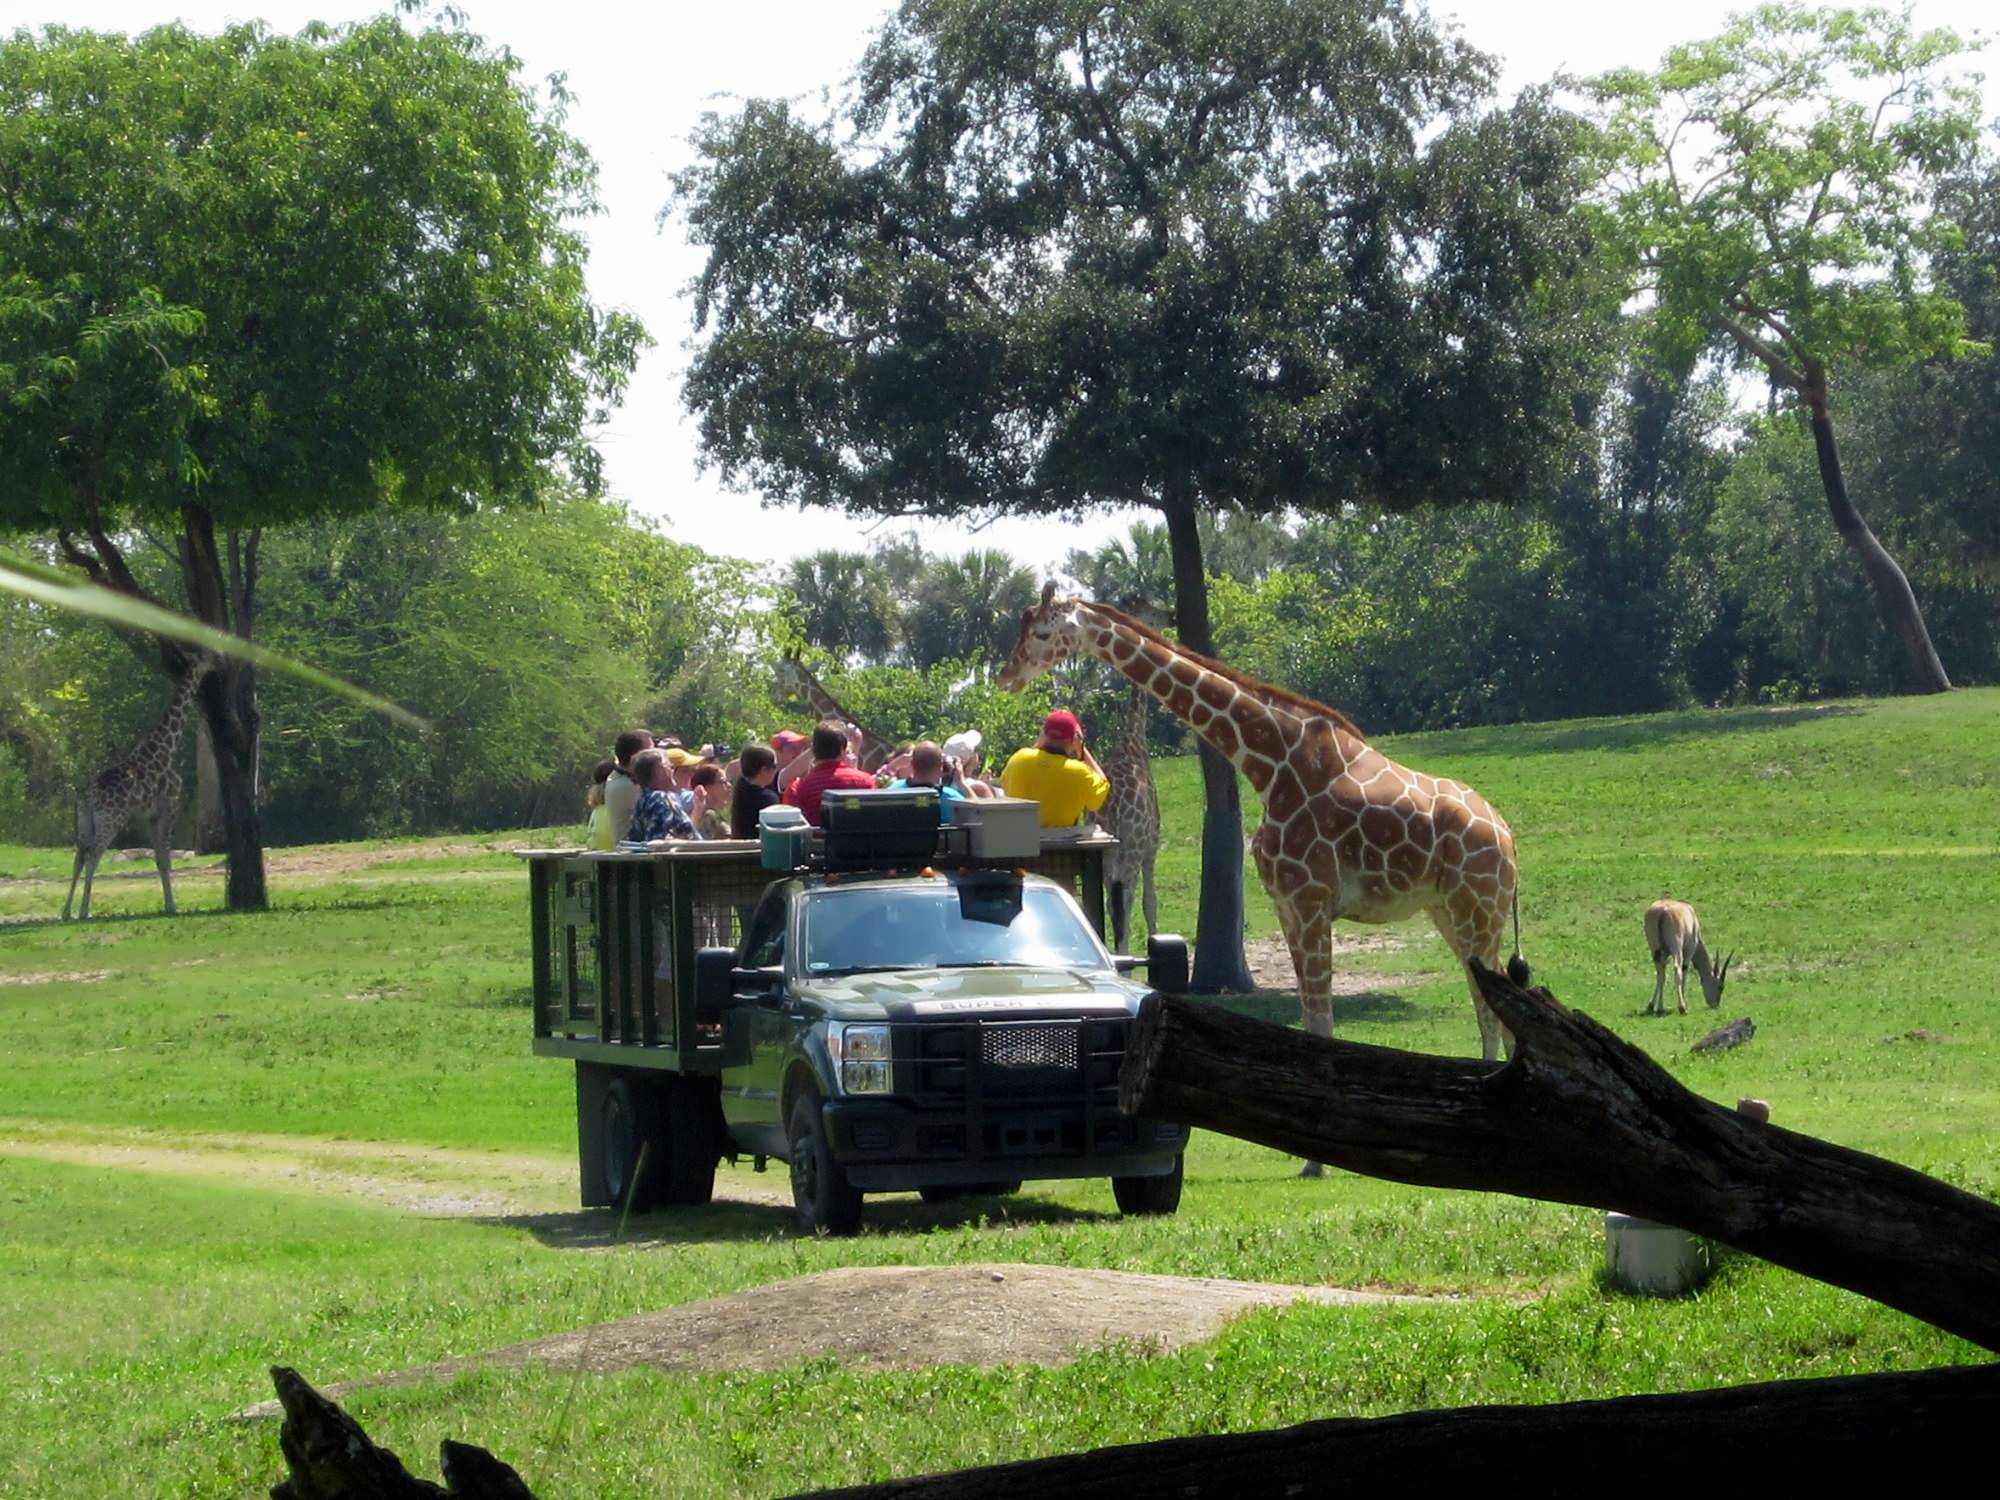 Animal encounters at Busch Gardens Tampa Bay